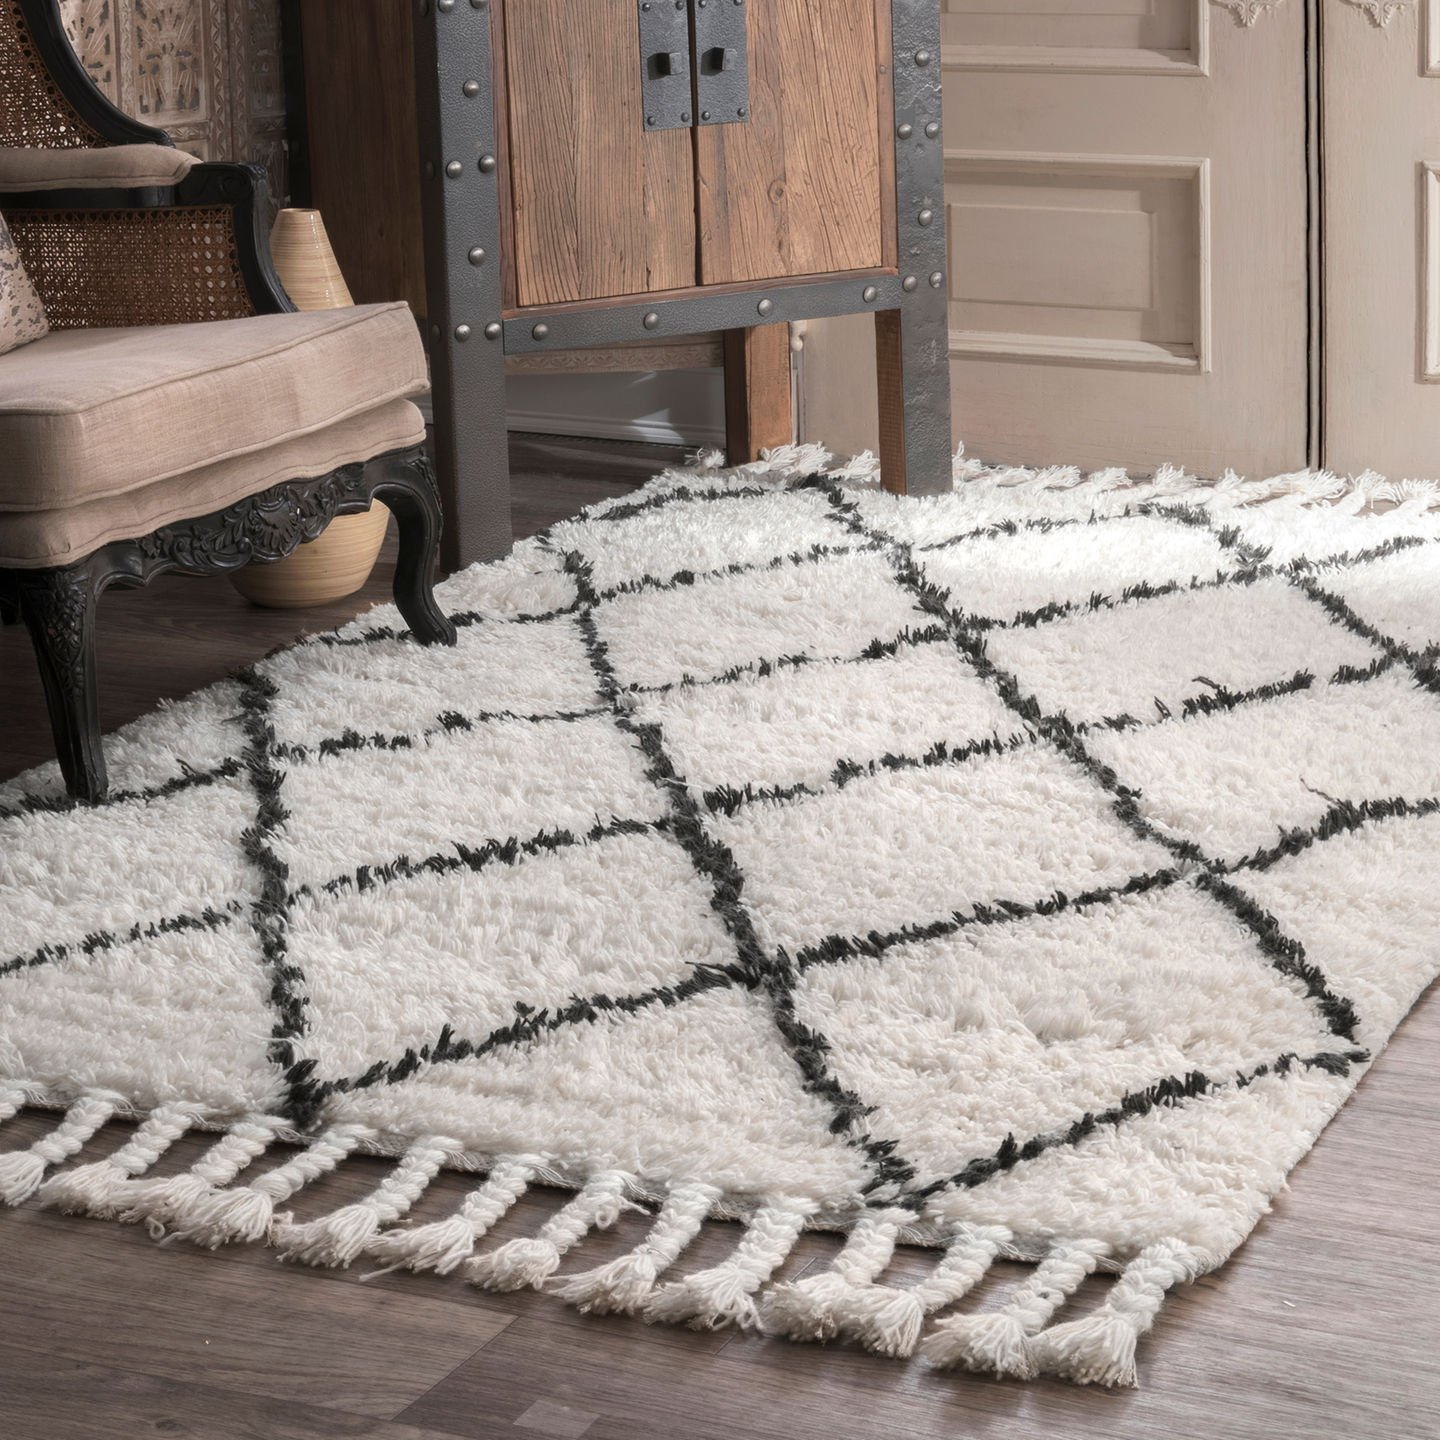 Amazon Com Nuloom Venice Collection 100 Percent Wool Area Rug 6 X